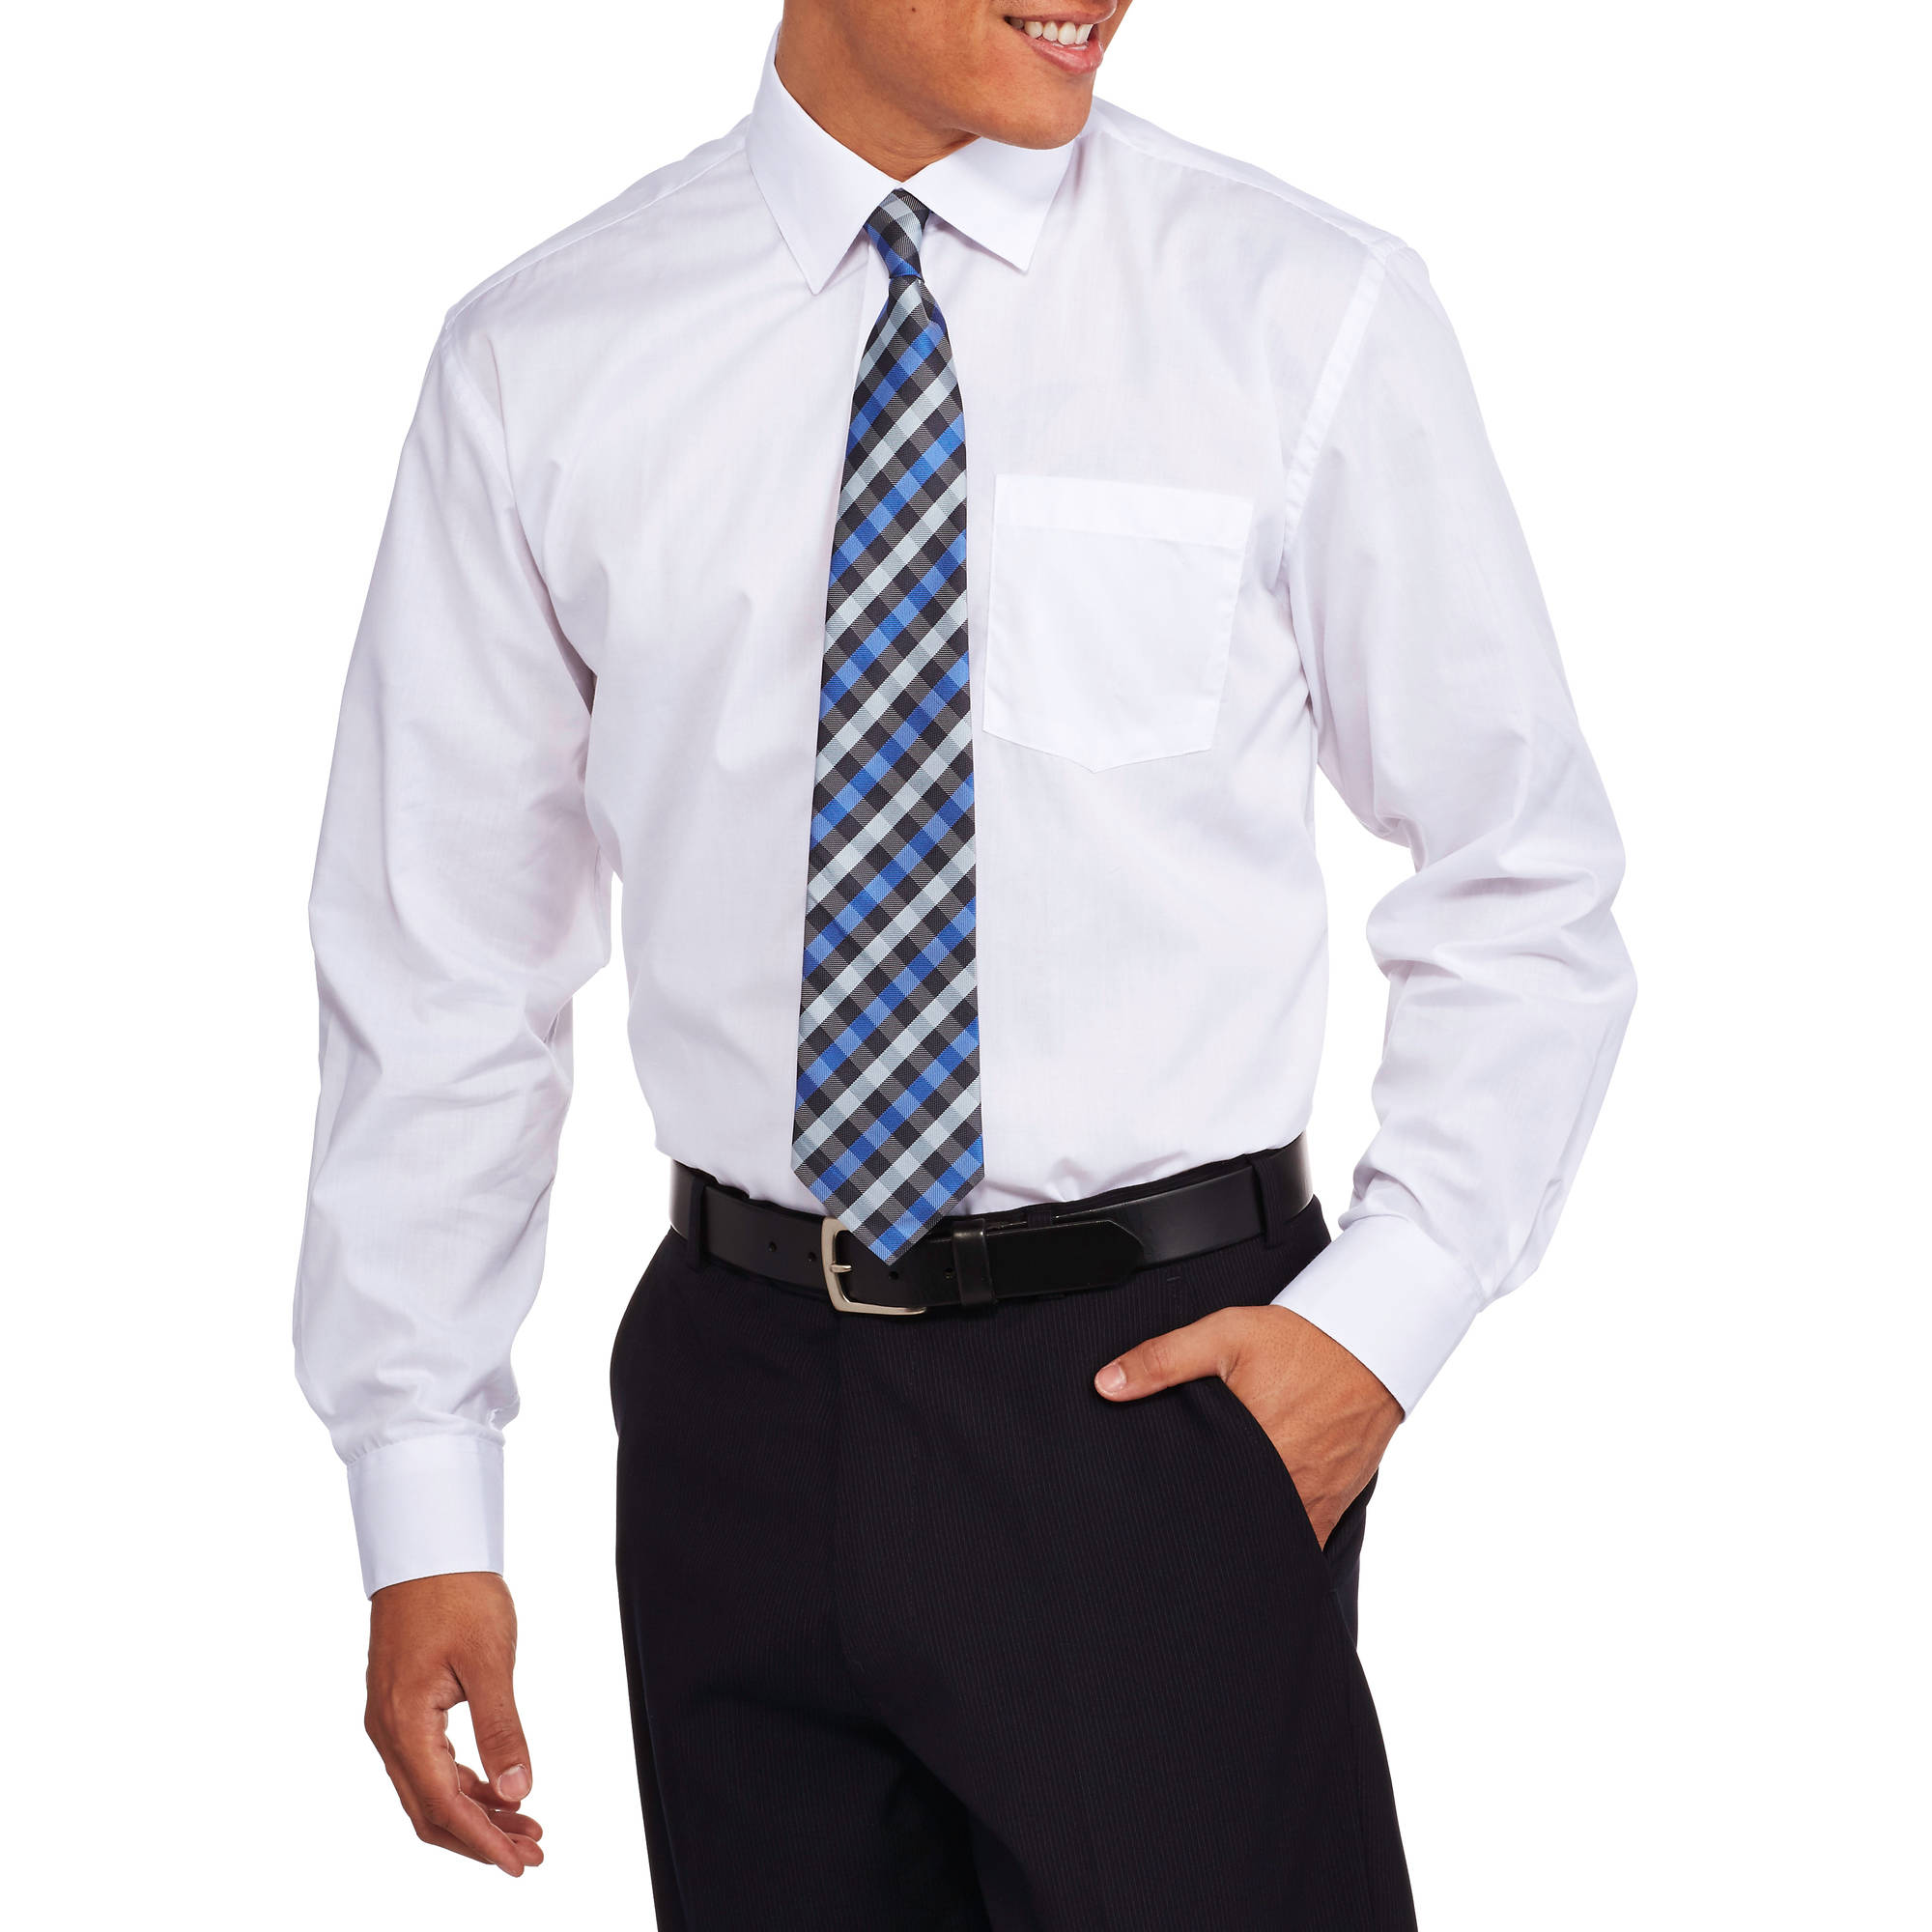 Men's 2-Piece Solid Dress Shirt and Tie Set